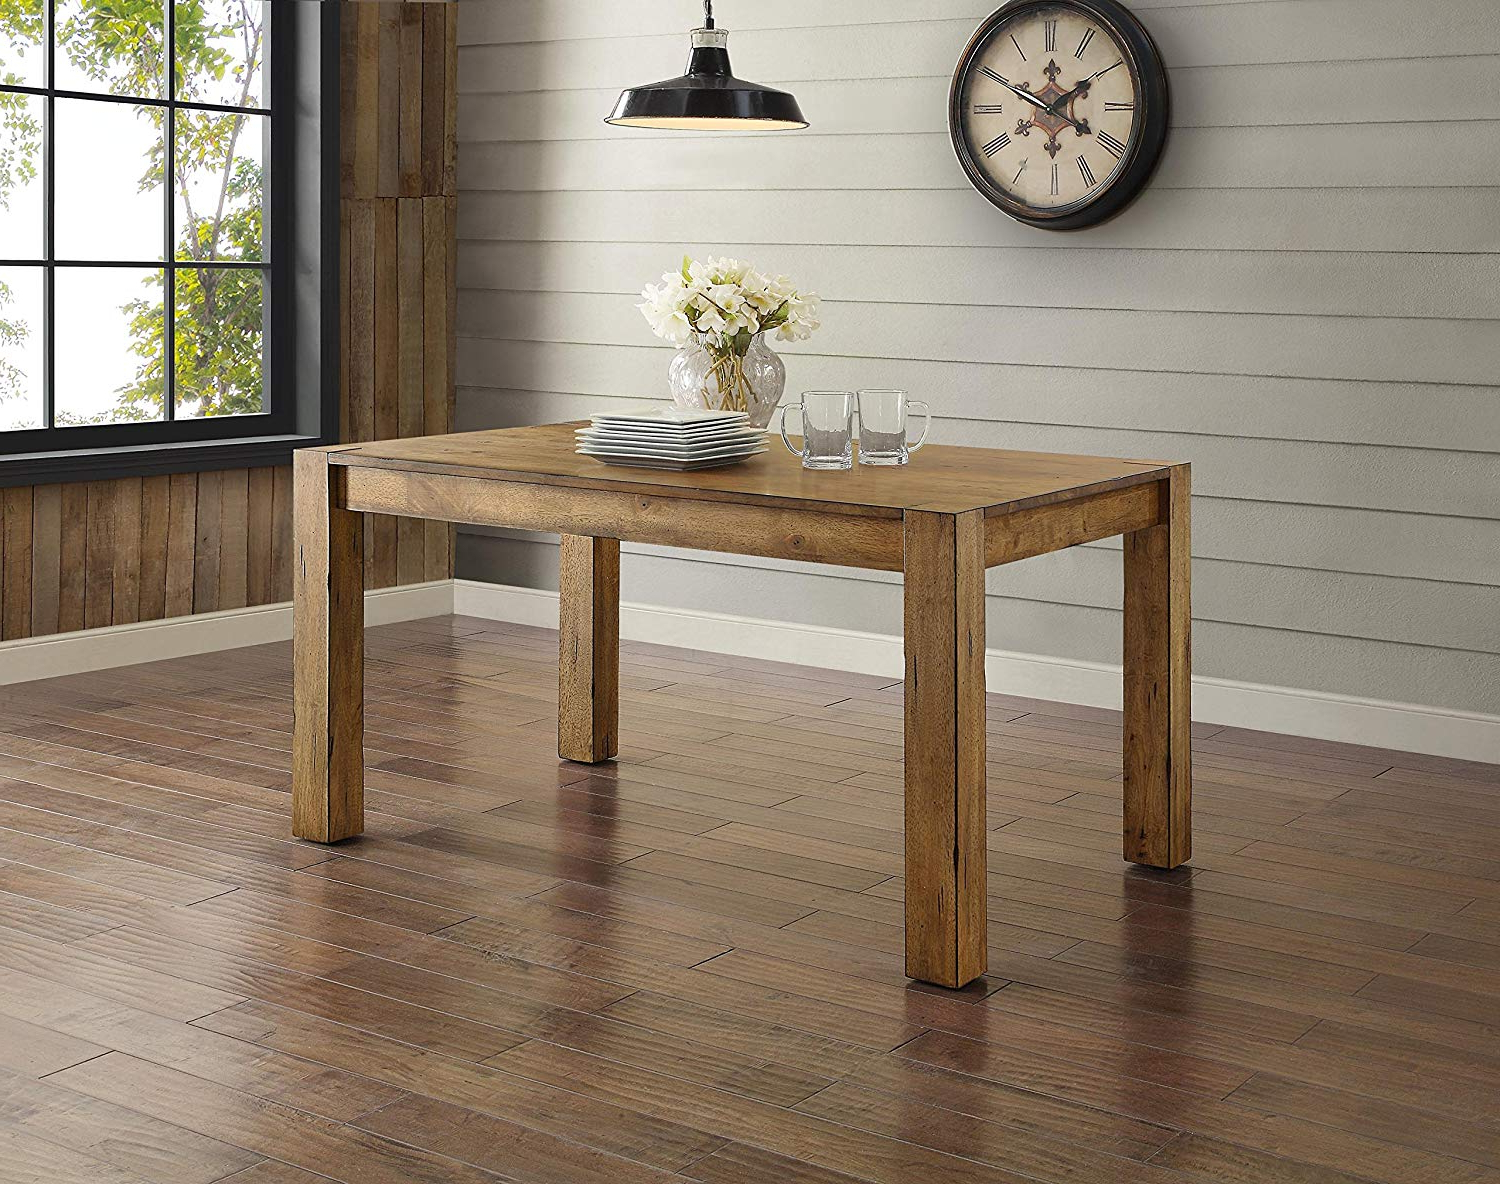 Amazon – Bryant Dining Table, Rustic Brown, Solid Wood Inside Current Acacia Dining Tables With Black Rocket Legs (View 21 of 30)